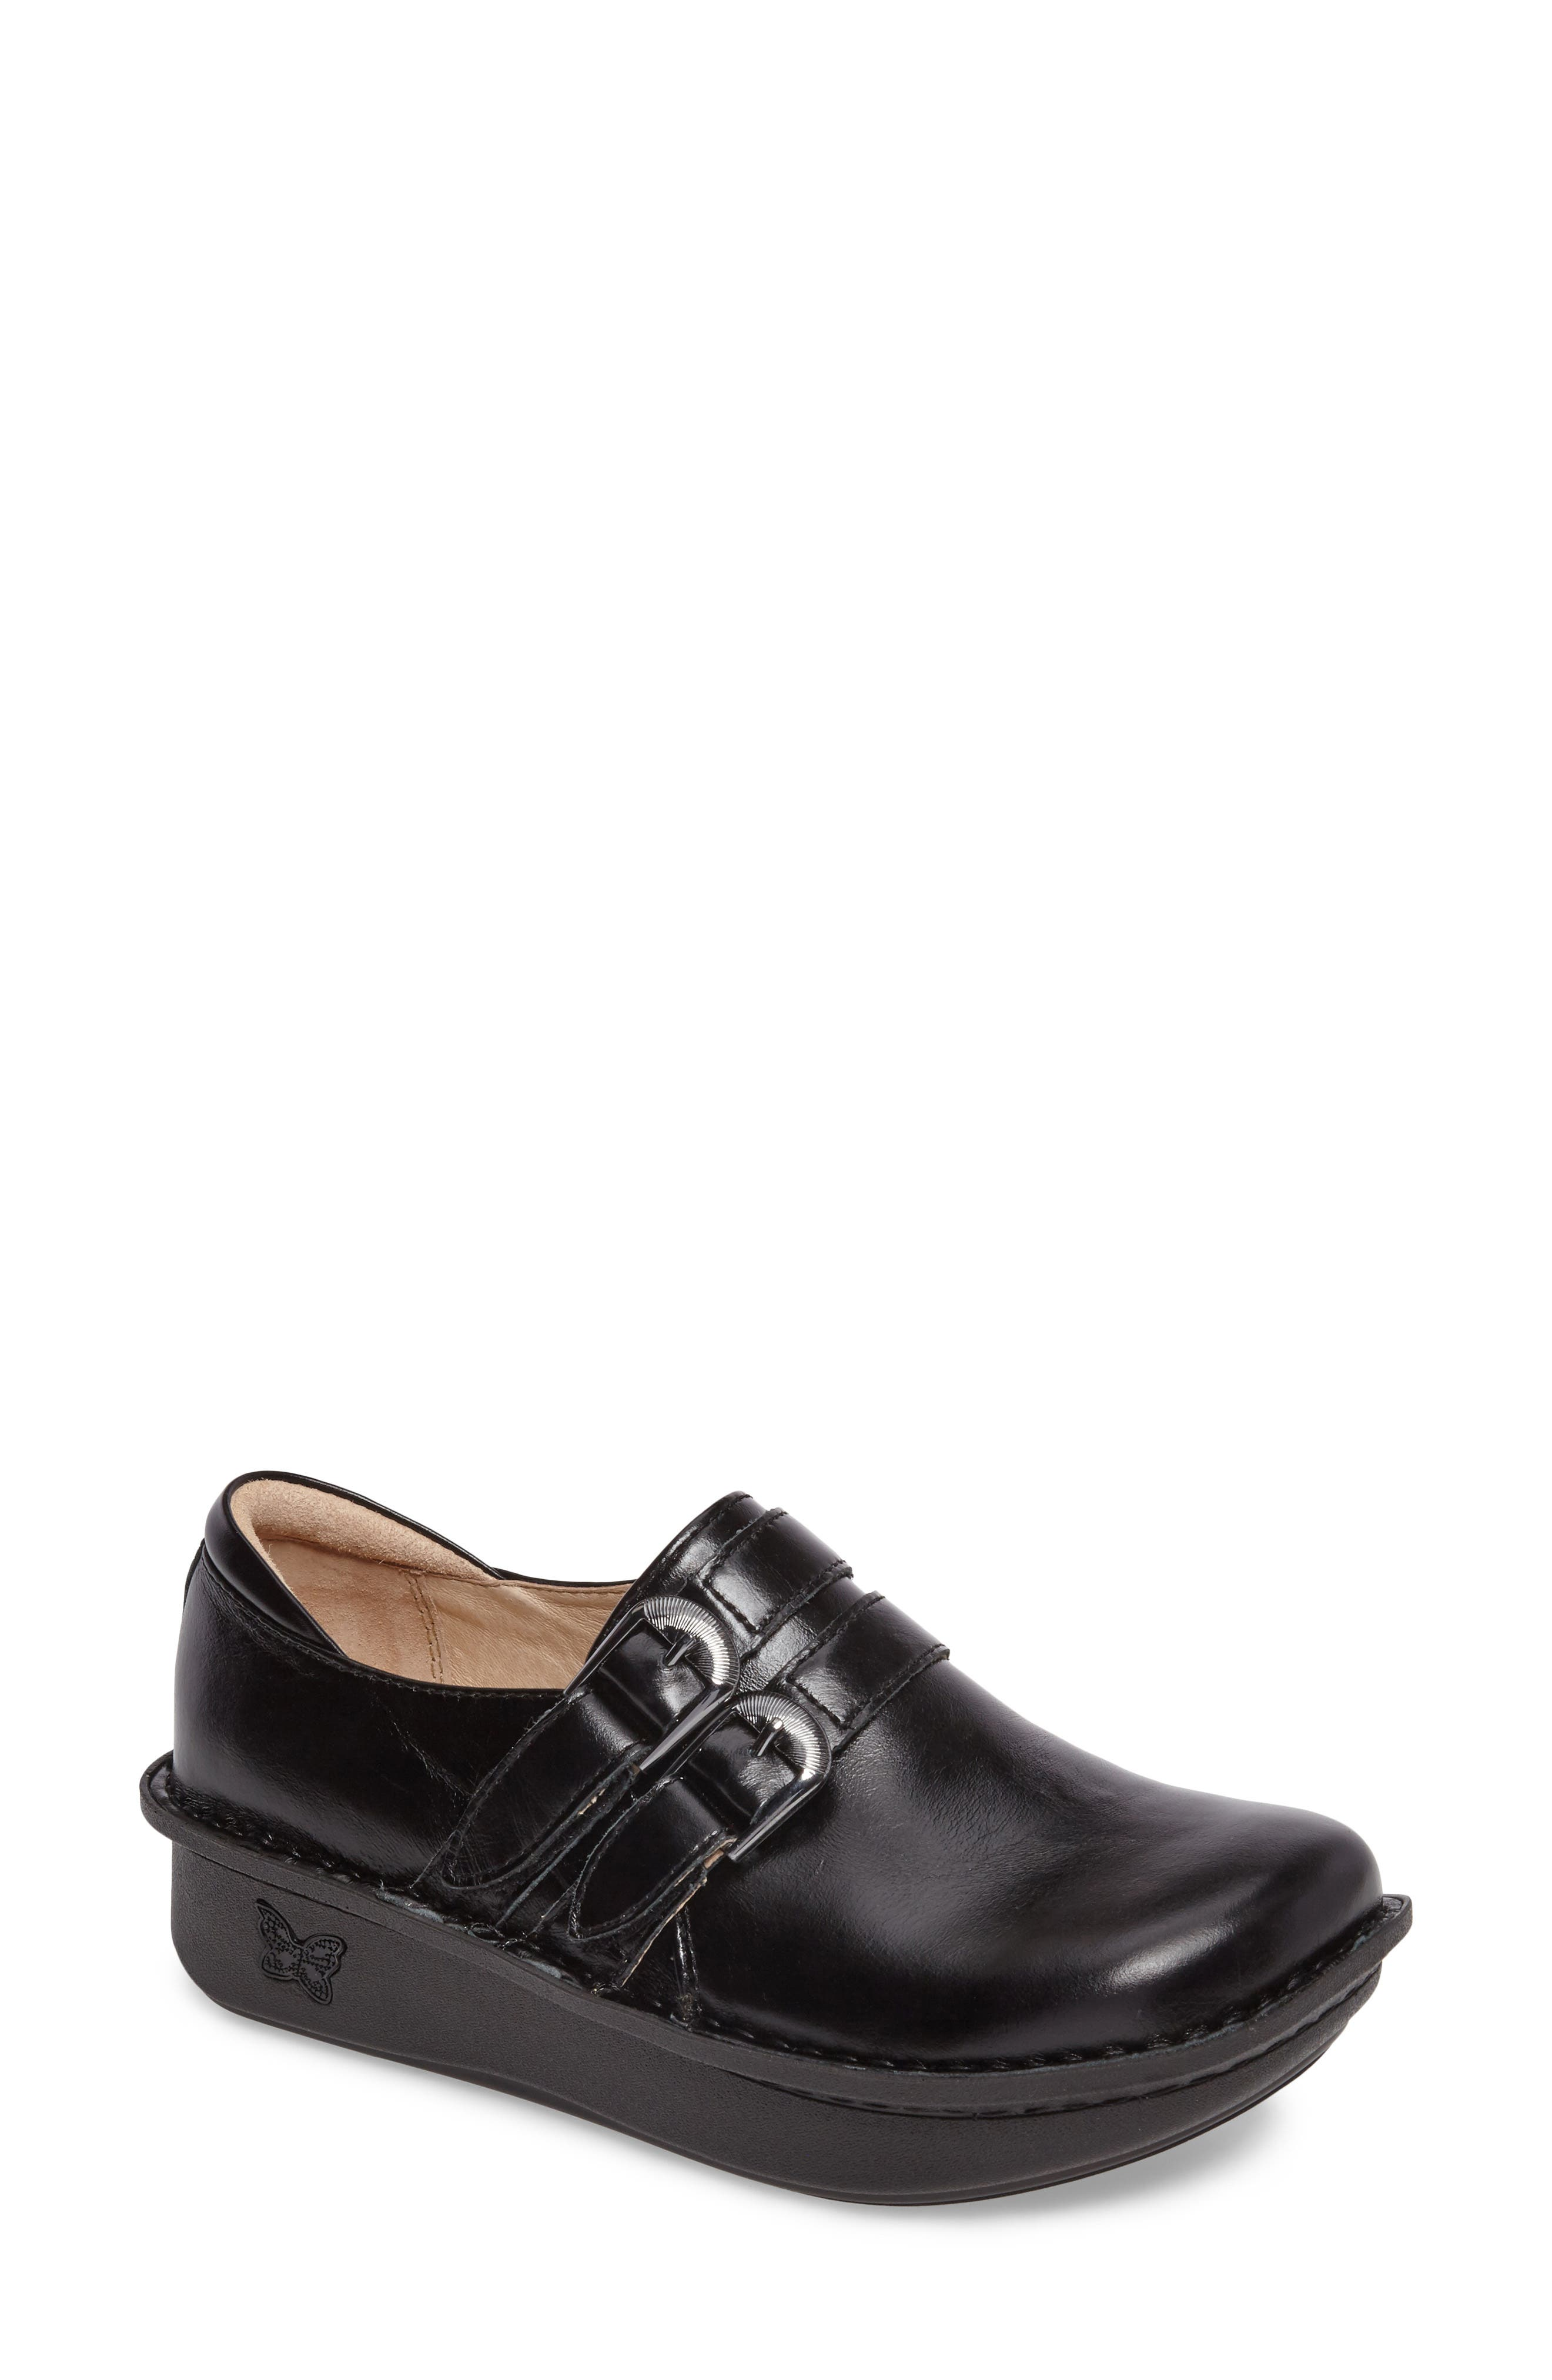 'Alli' Loafer,                             Main thumbnail 1, color,                             006